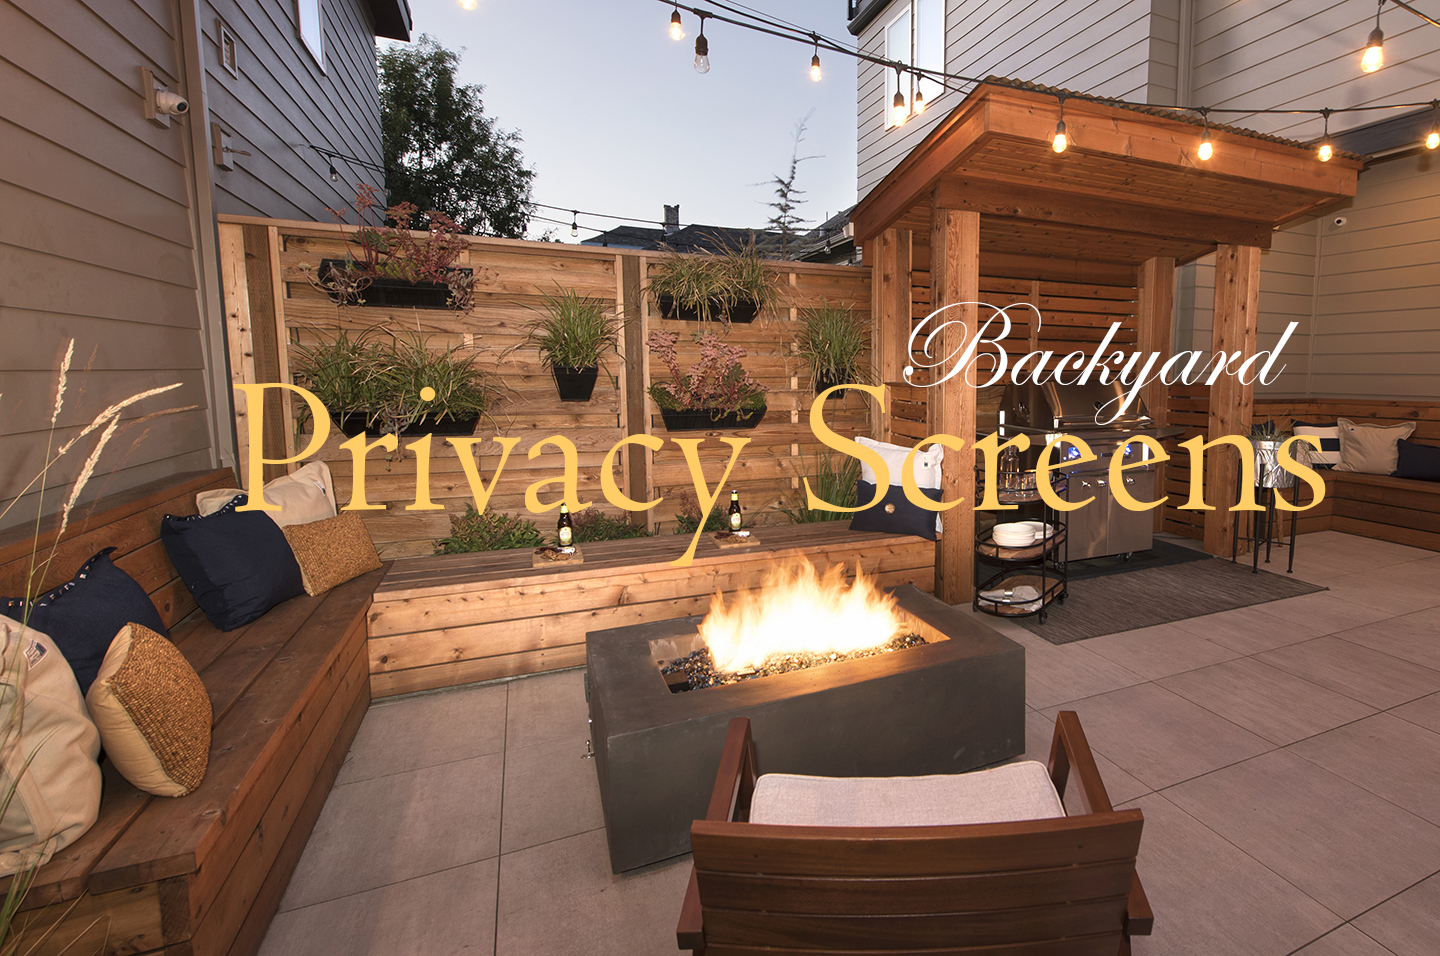 backyard privacy screens paradise restored landscaping